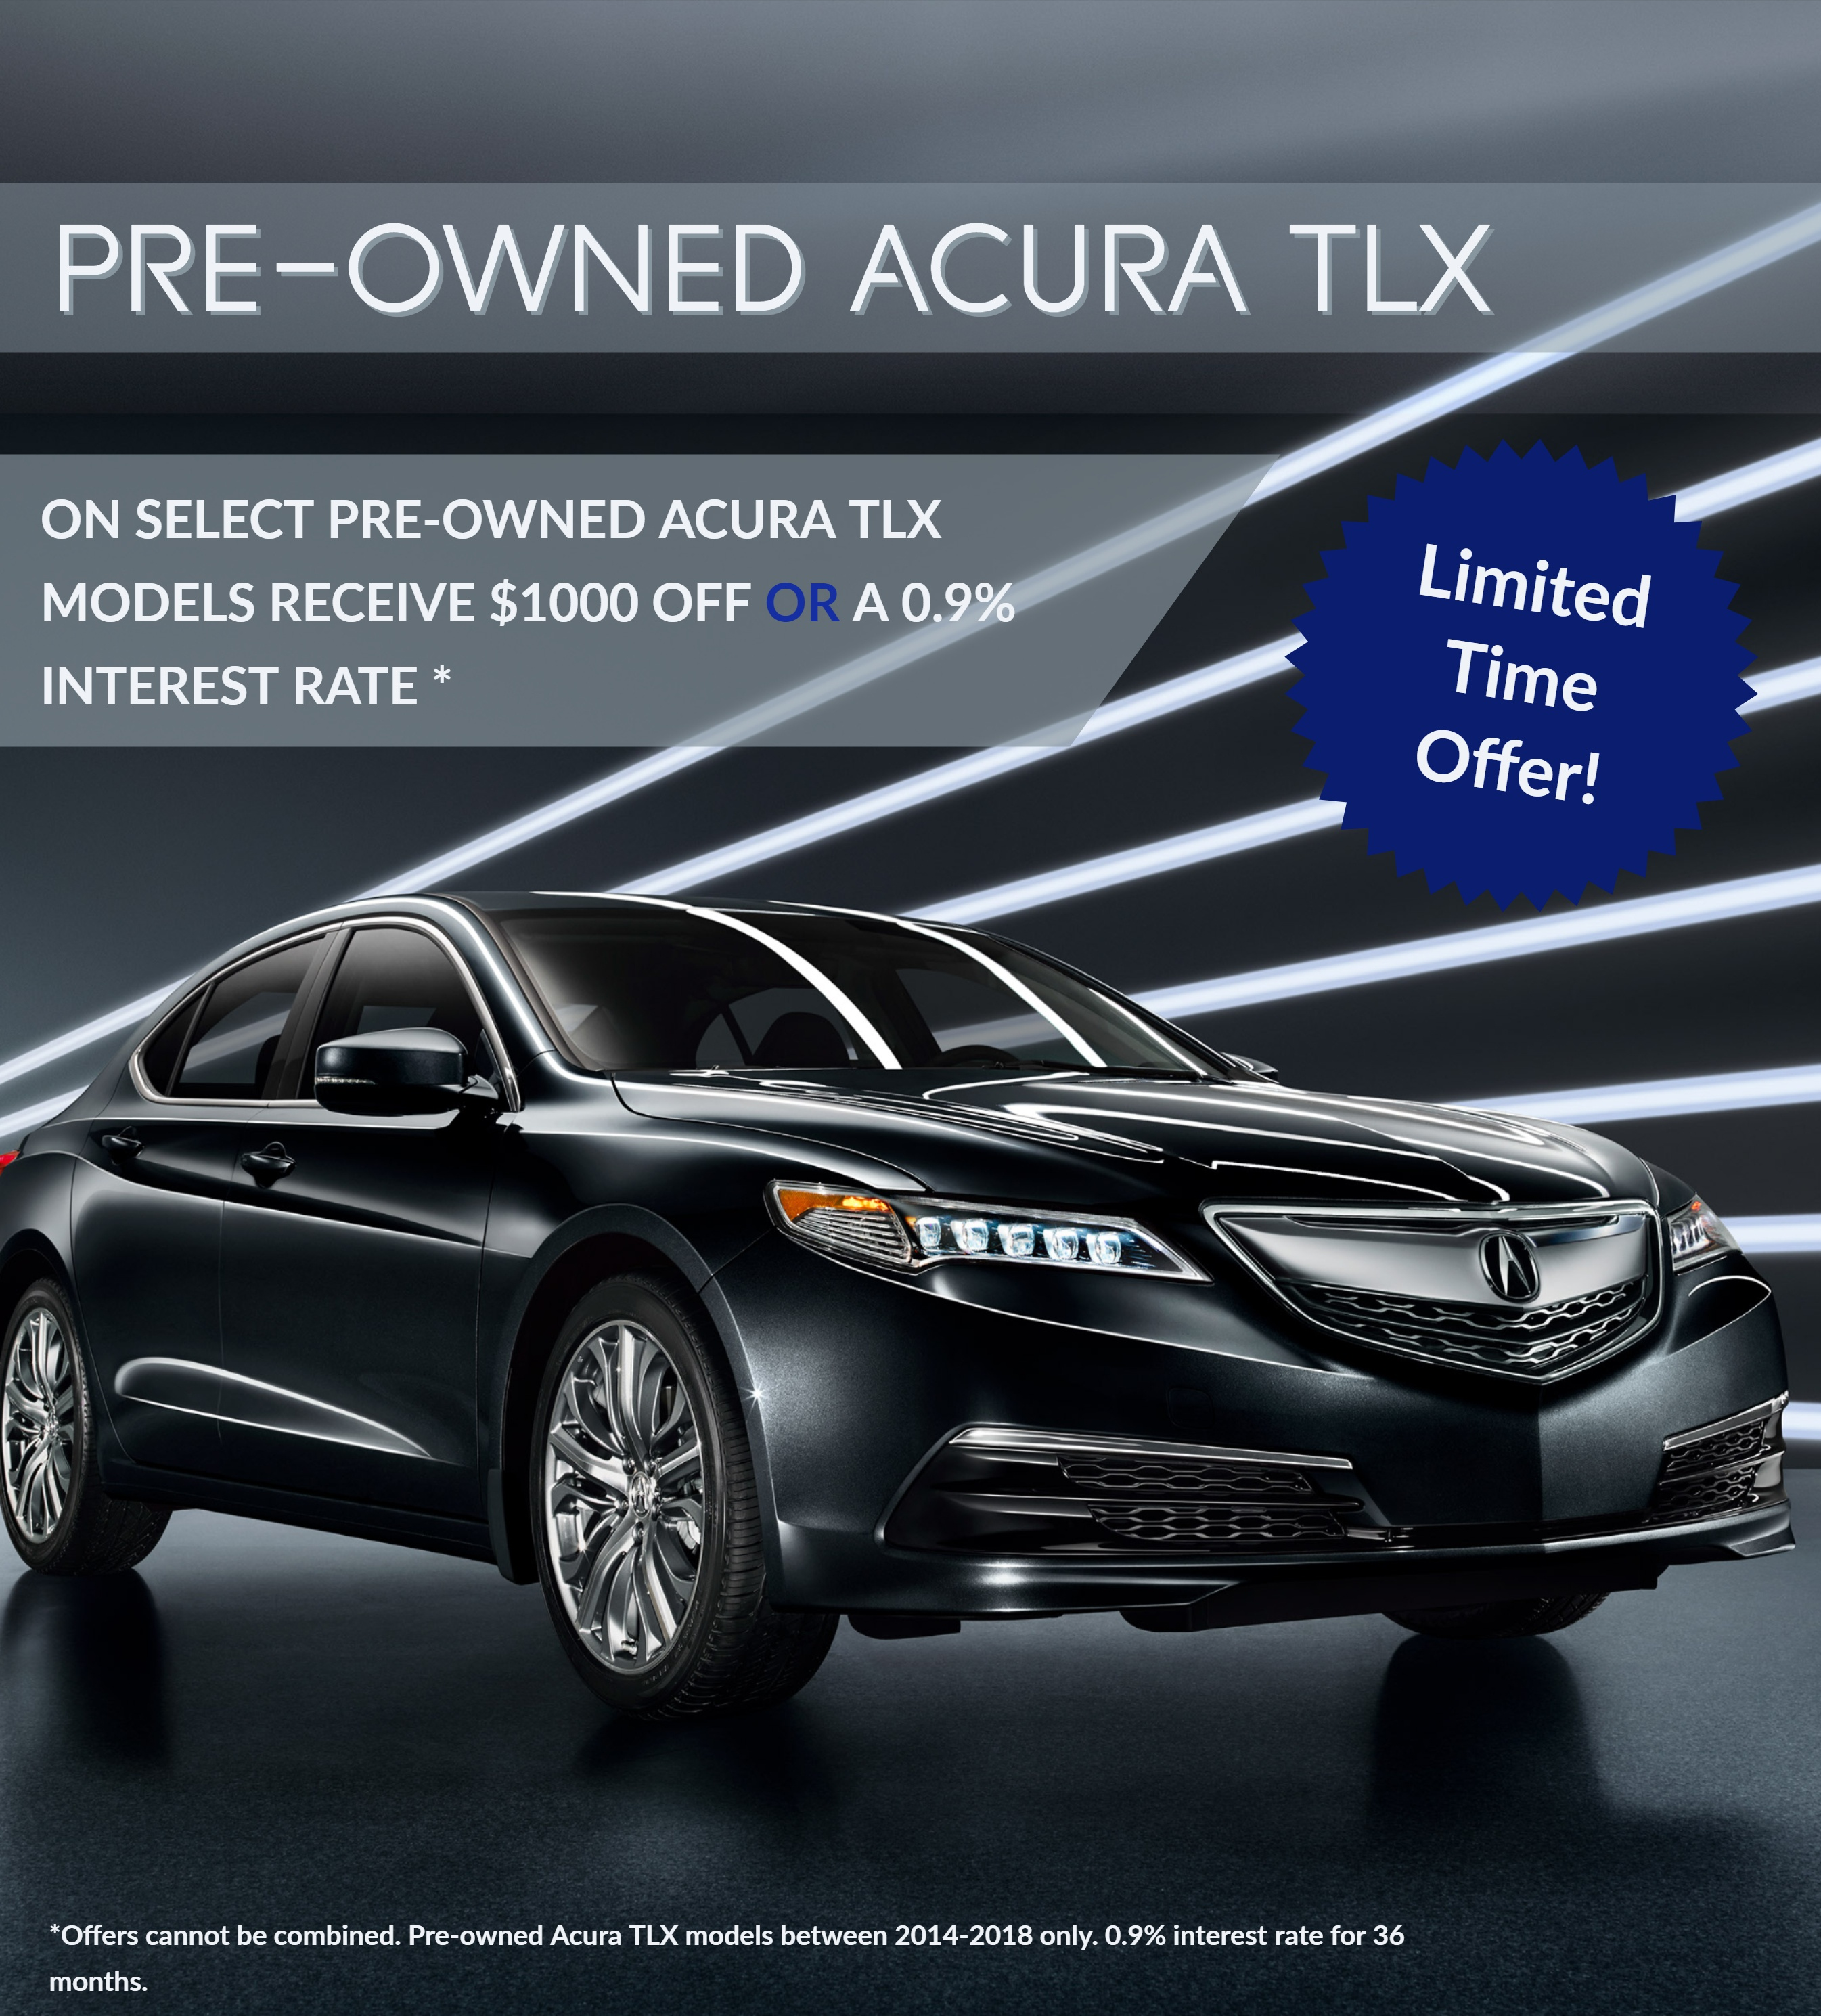 Limited Time Offer - Acura Downtown